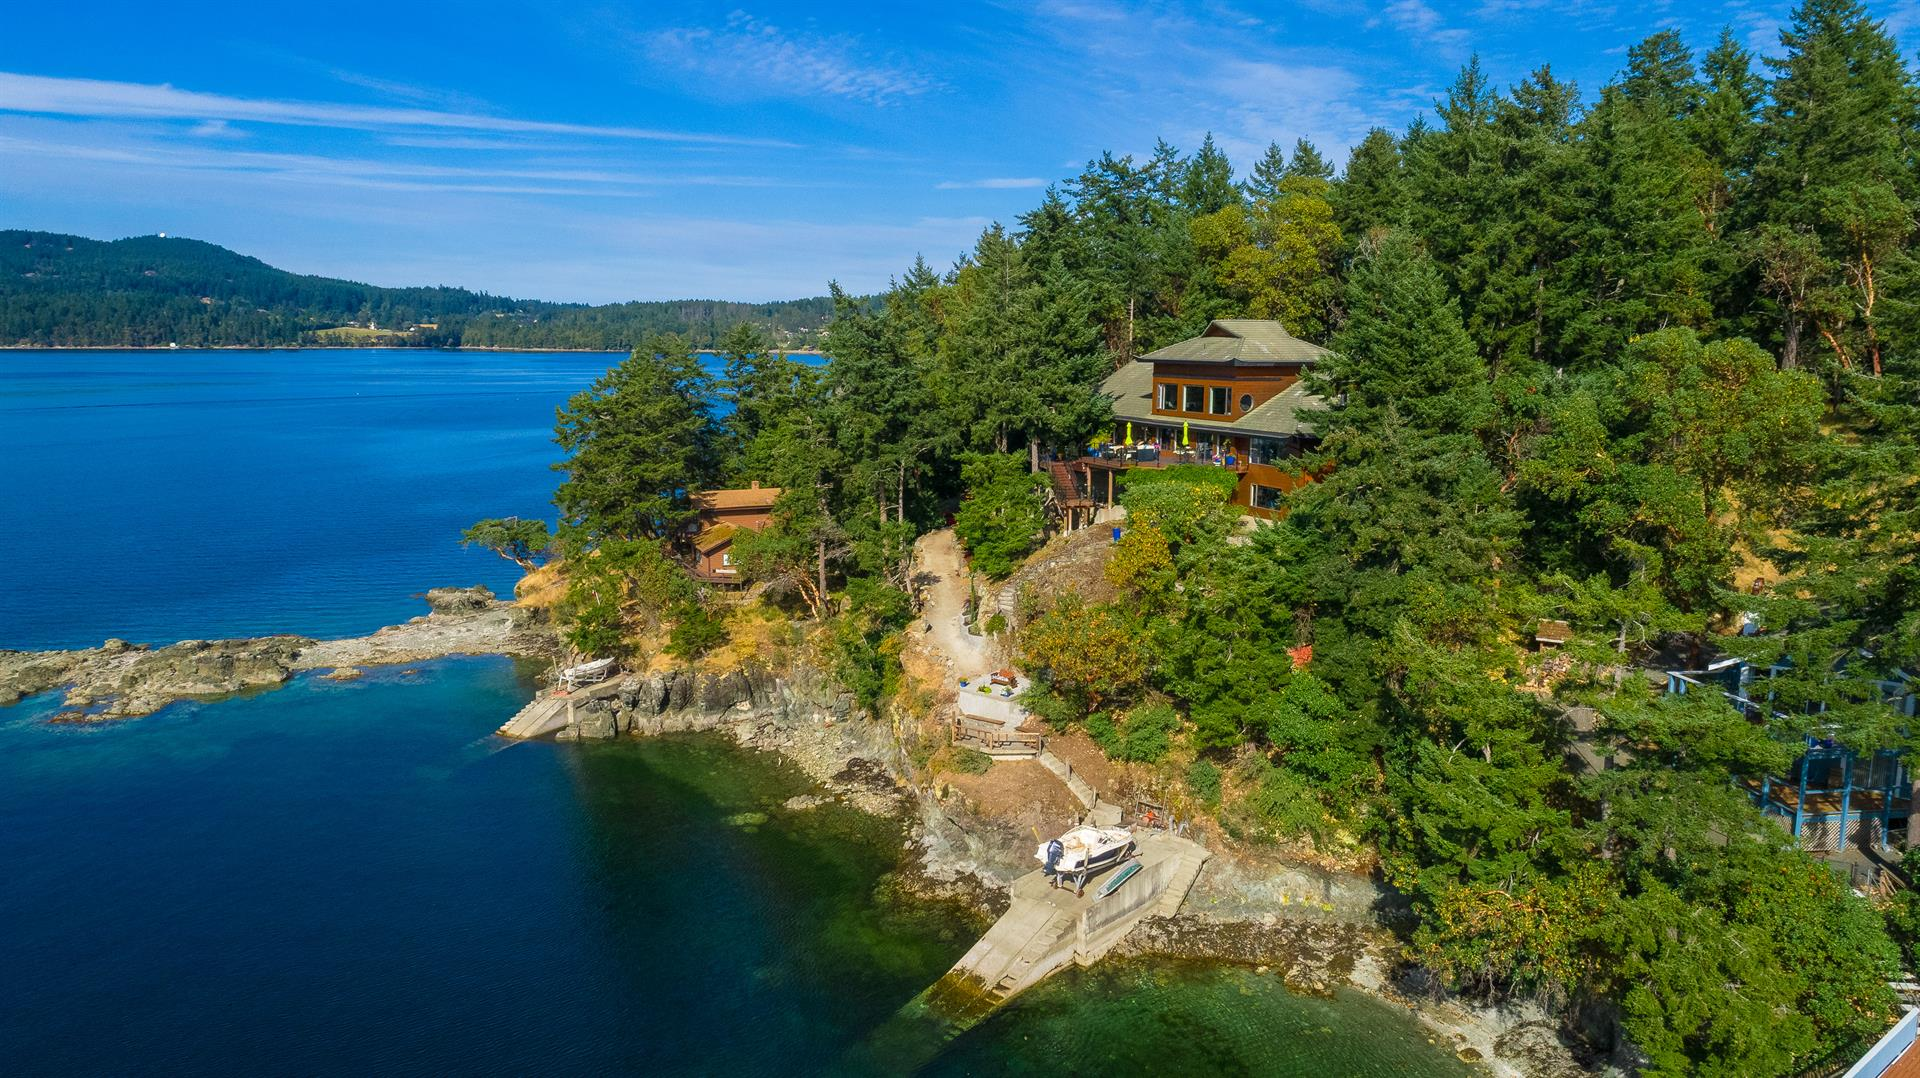 The evergreen forests of Gowlland Tod Provincial Park set the scene for this Asian-inspired home on Vancouver Island, British Columbia.